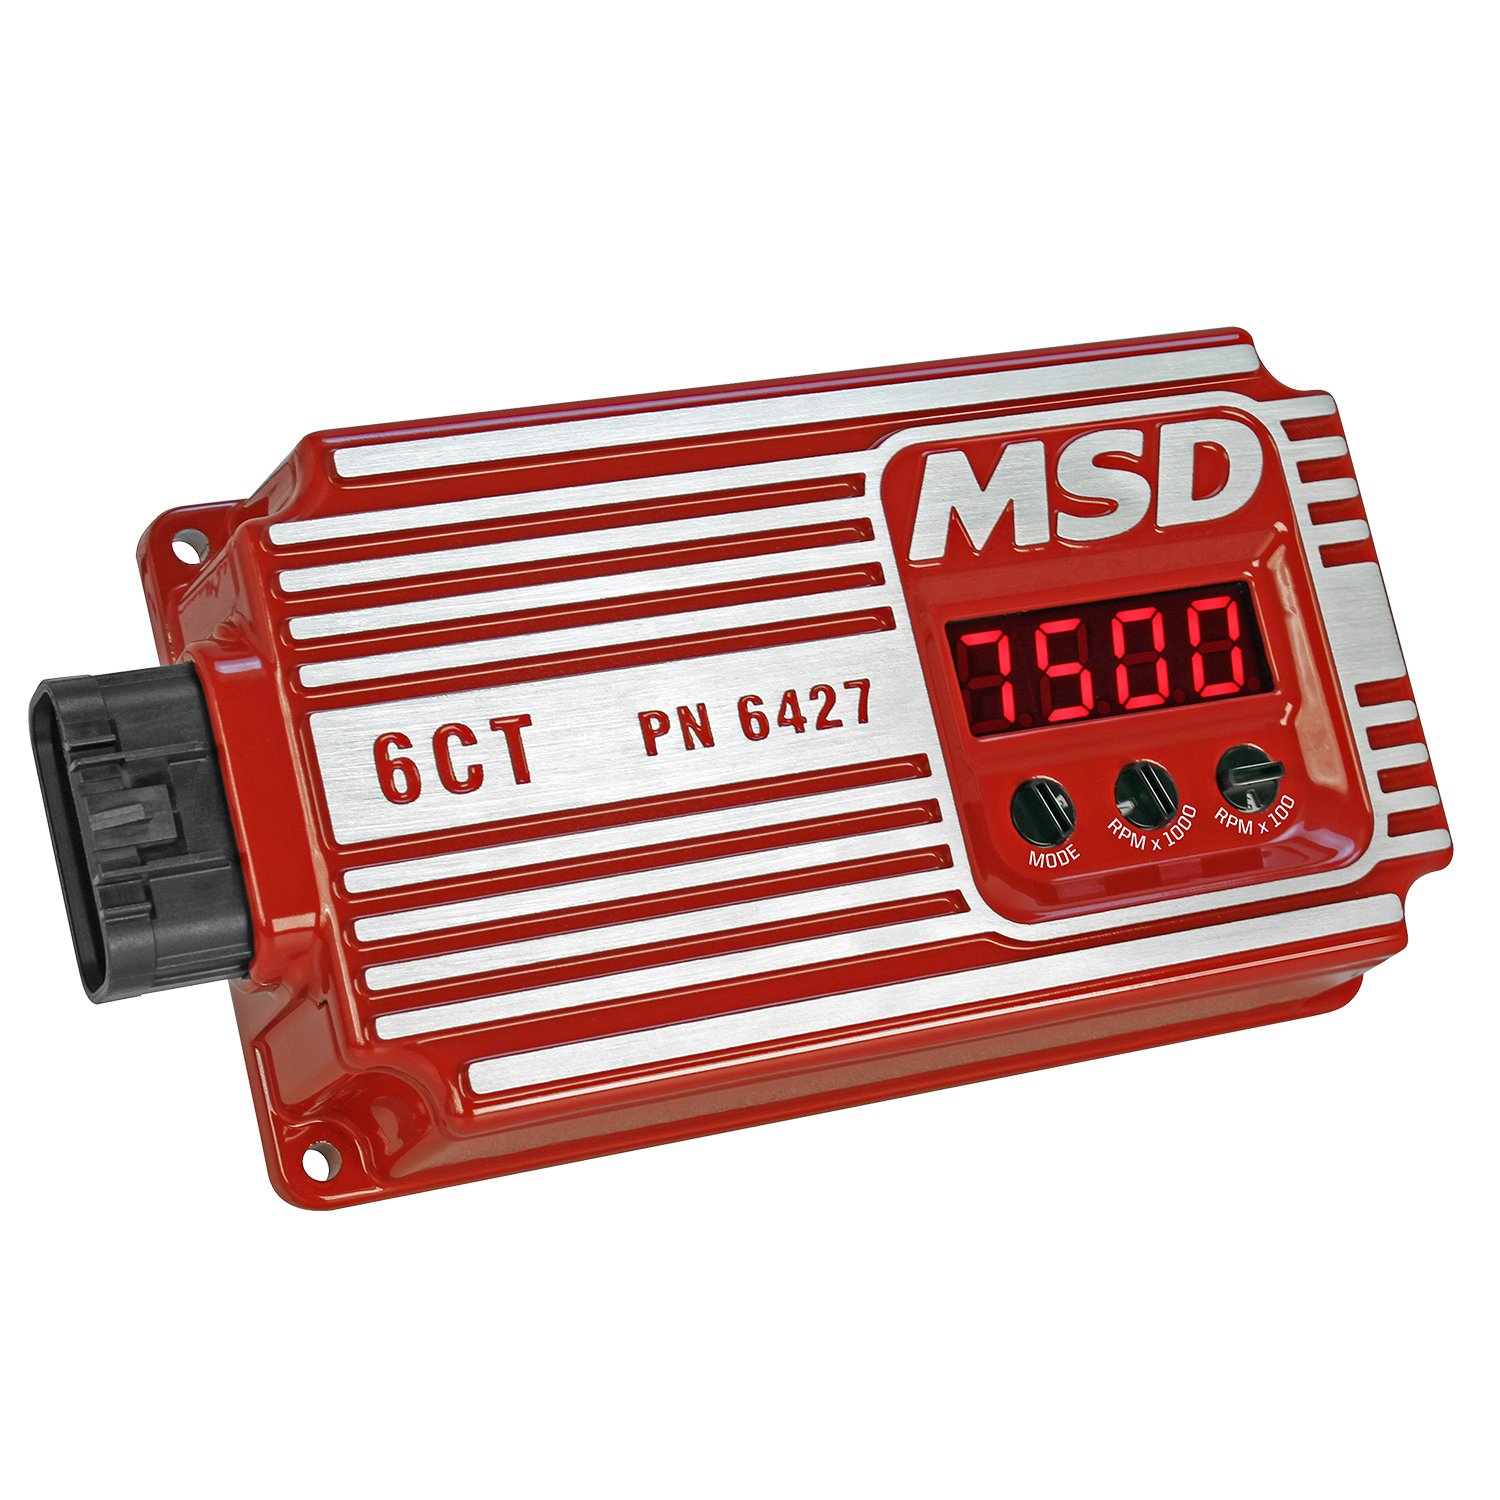 hight resolution of 6427 msd 6ct ignition control image